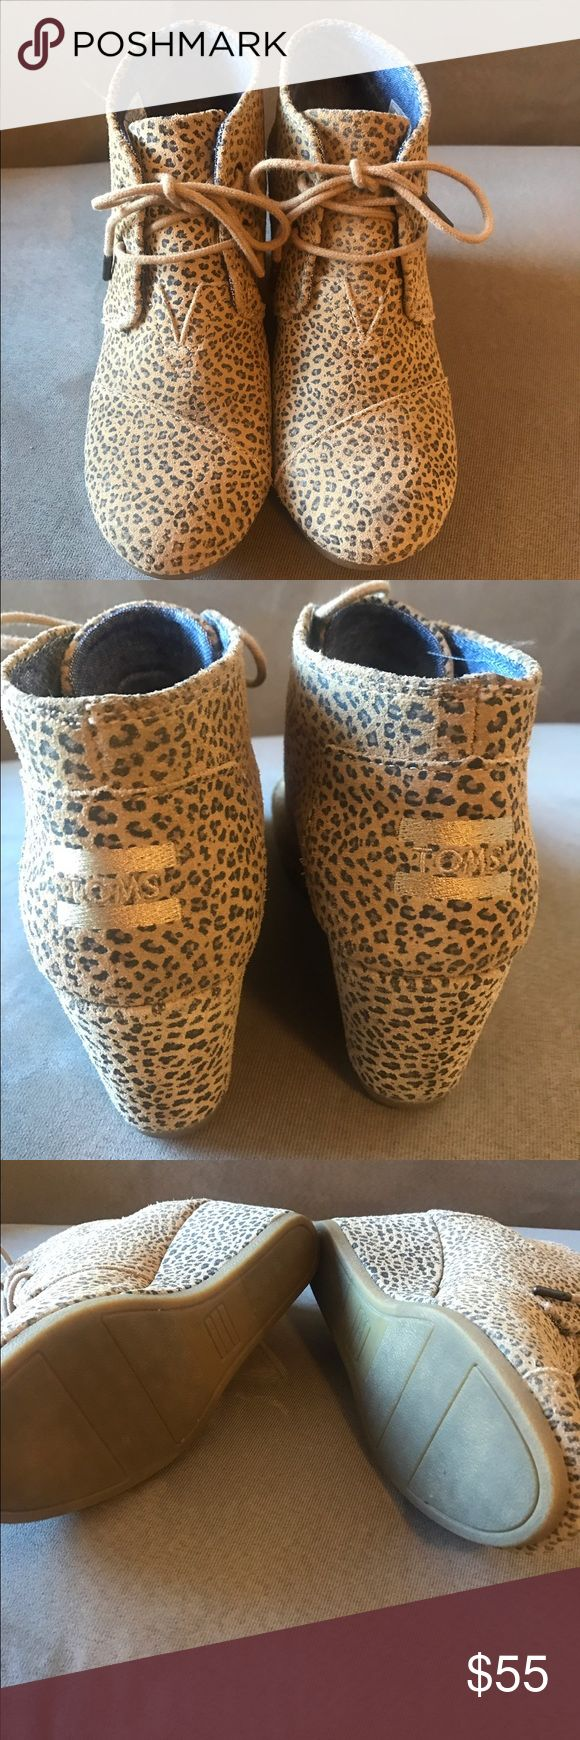 TOMS Desert Wedge Booties animal/cheetah/leopard The cutest wedges, this pattern is neutral enough to go with everything, while adding some flair. The interior is denim. Worn once, great condition! I live in a sandal climate so these are just sitting in my closet. Everything ships within 24 hours! 😘 TOMS Shoes Ankle Boots & Booties